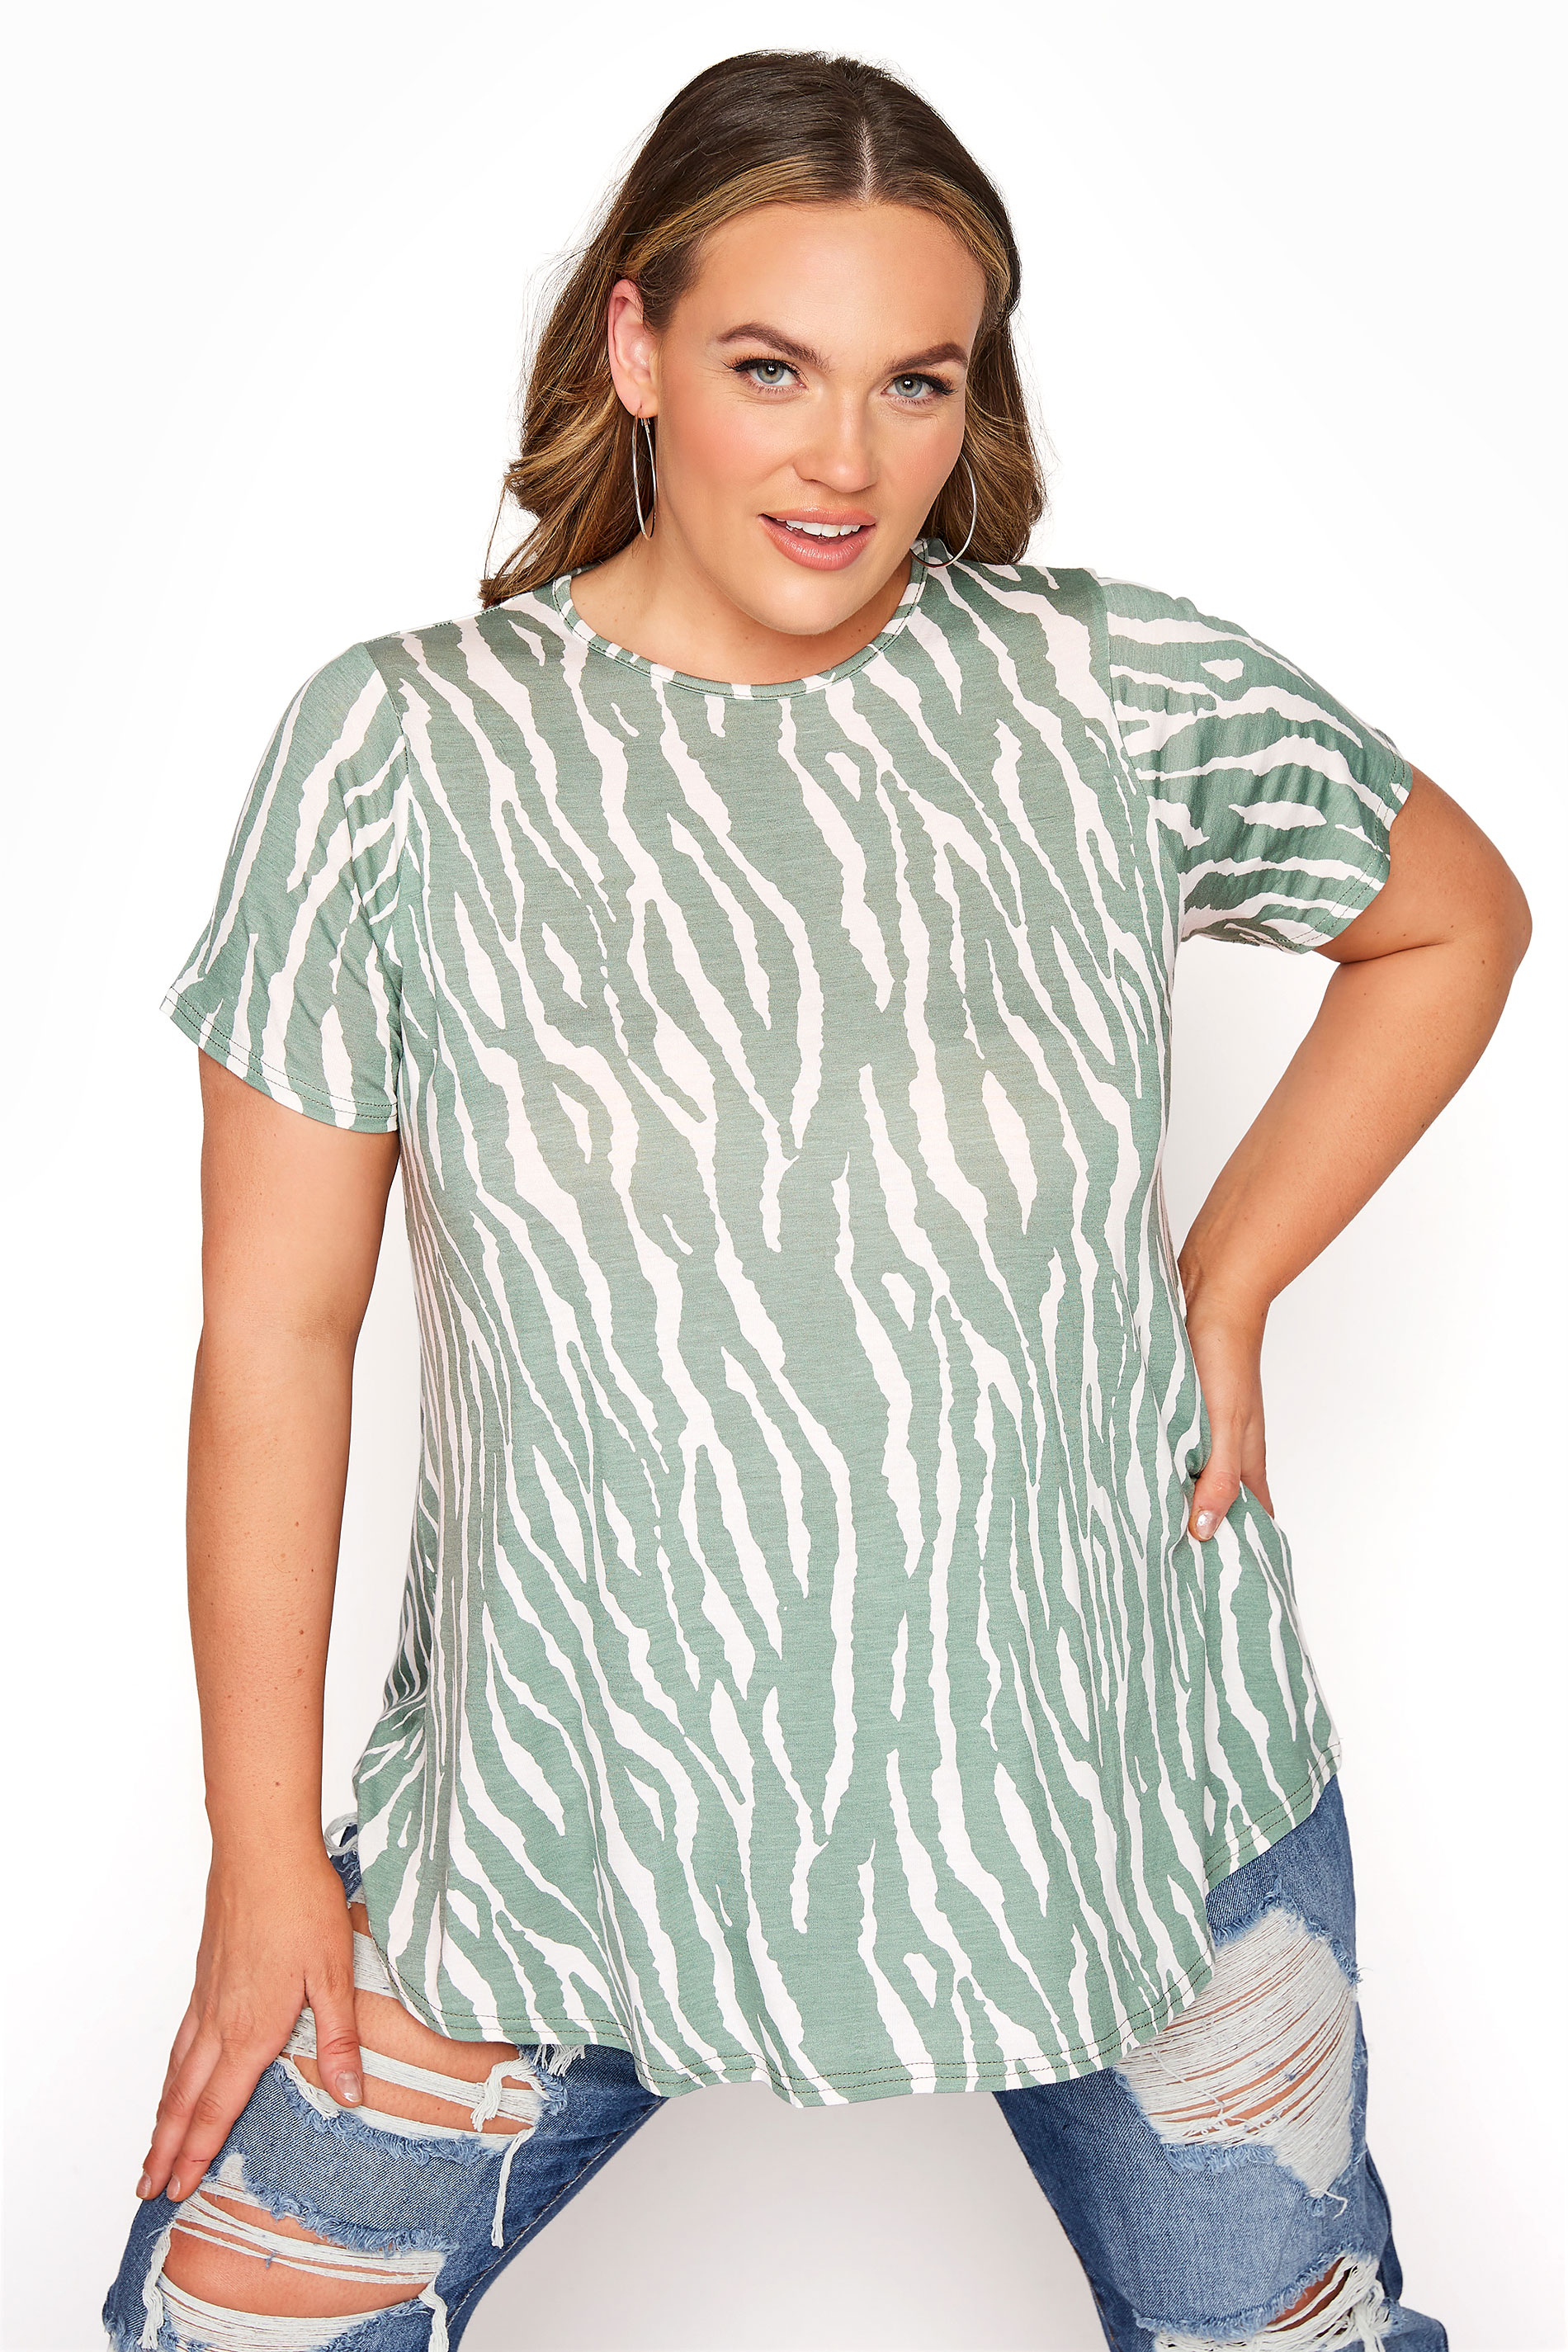 LIMITED COLLECTION Sage Green Zebra Print Swing Top_A.jpg